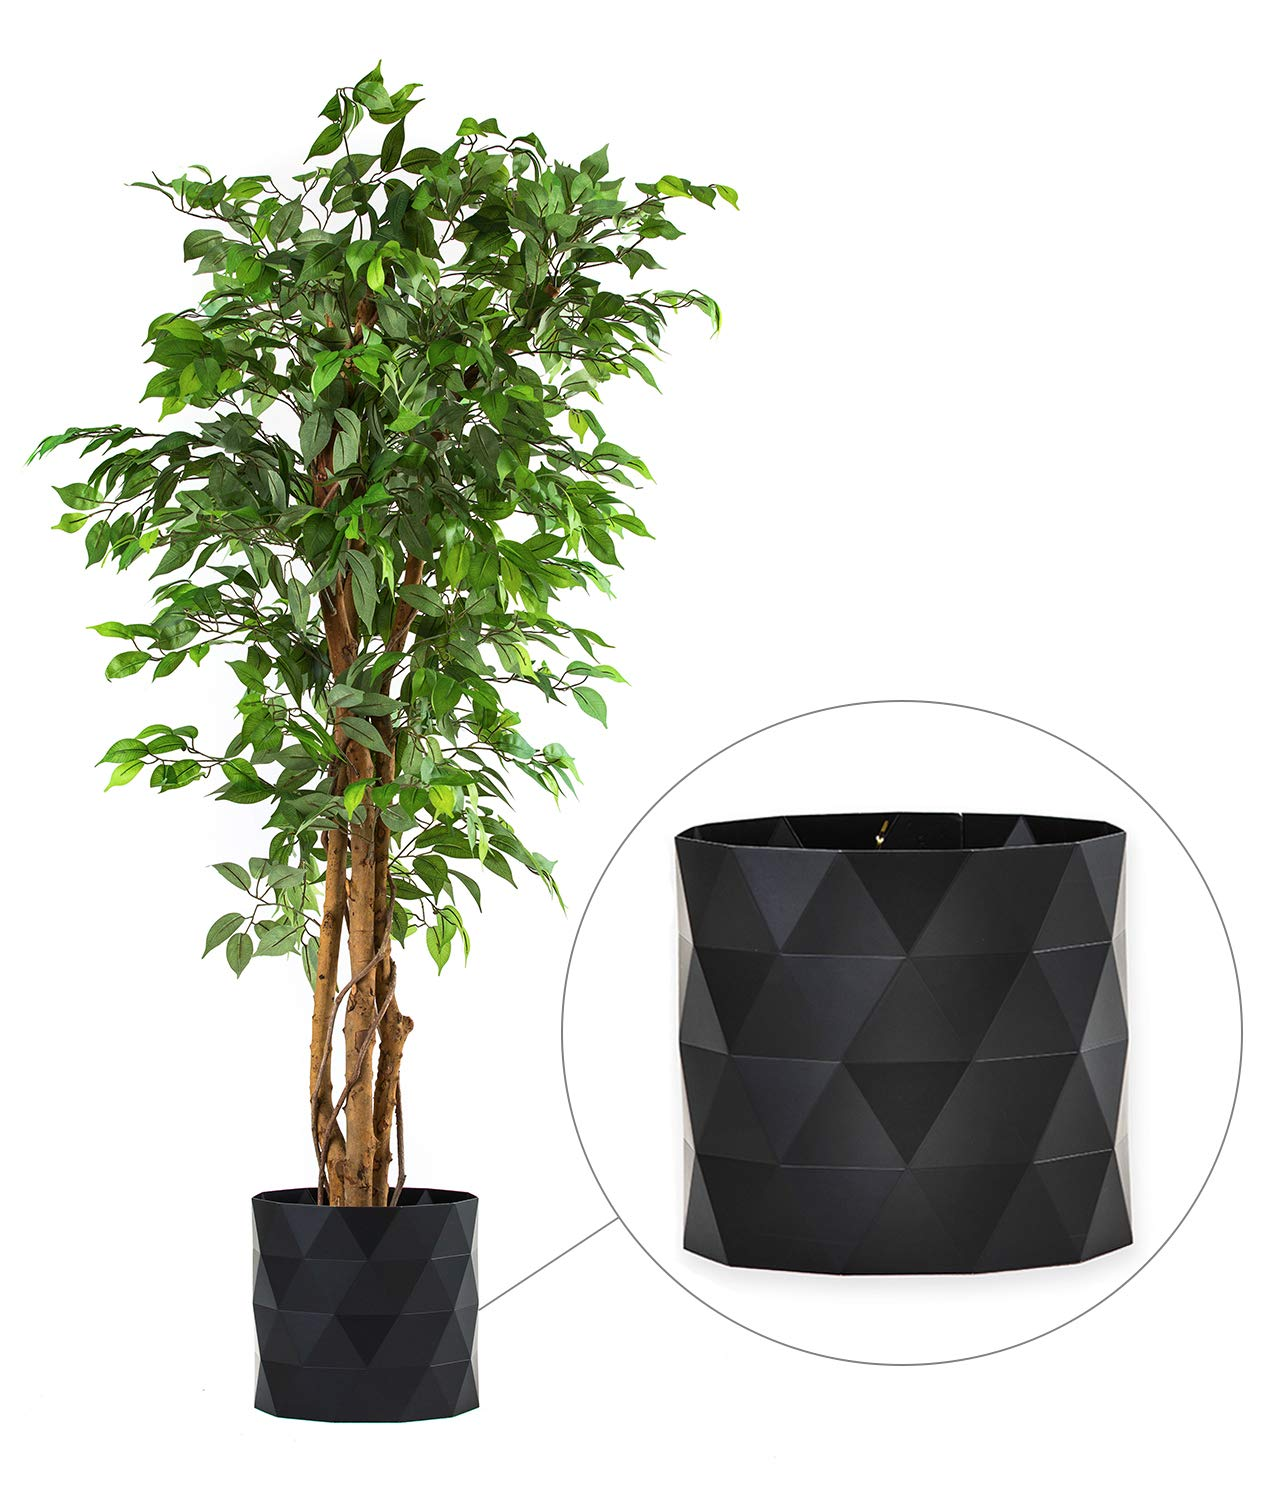 DELUXE Artificial Allowing Maintenance Outdoor